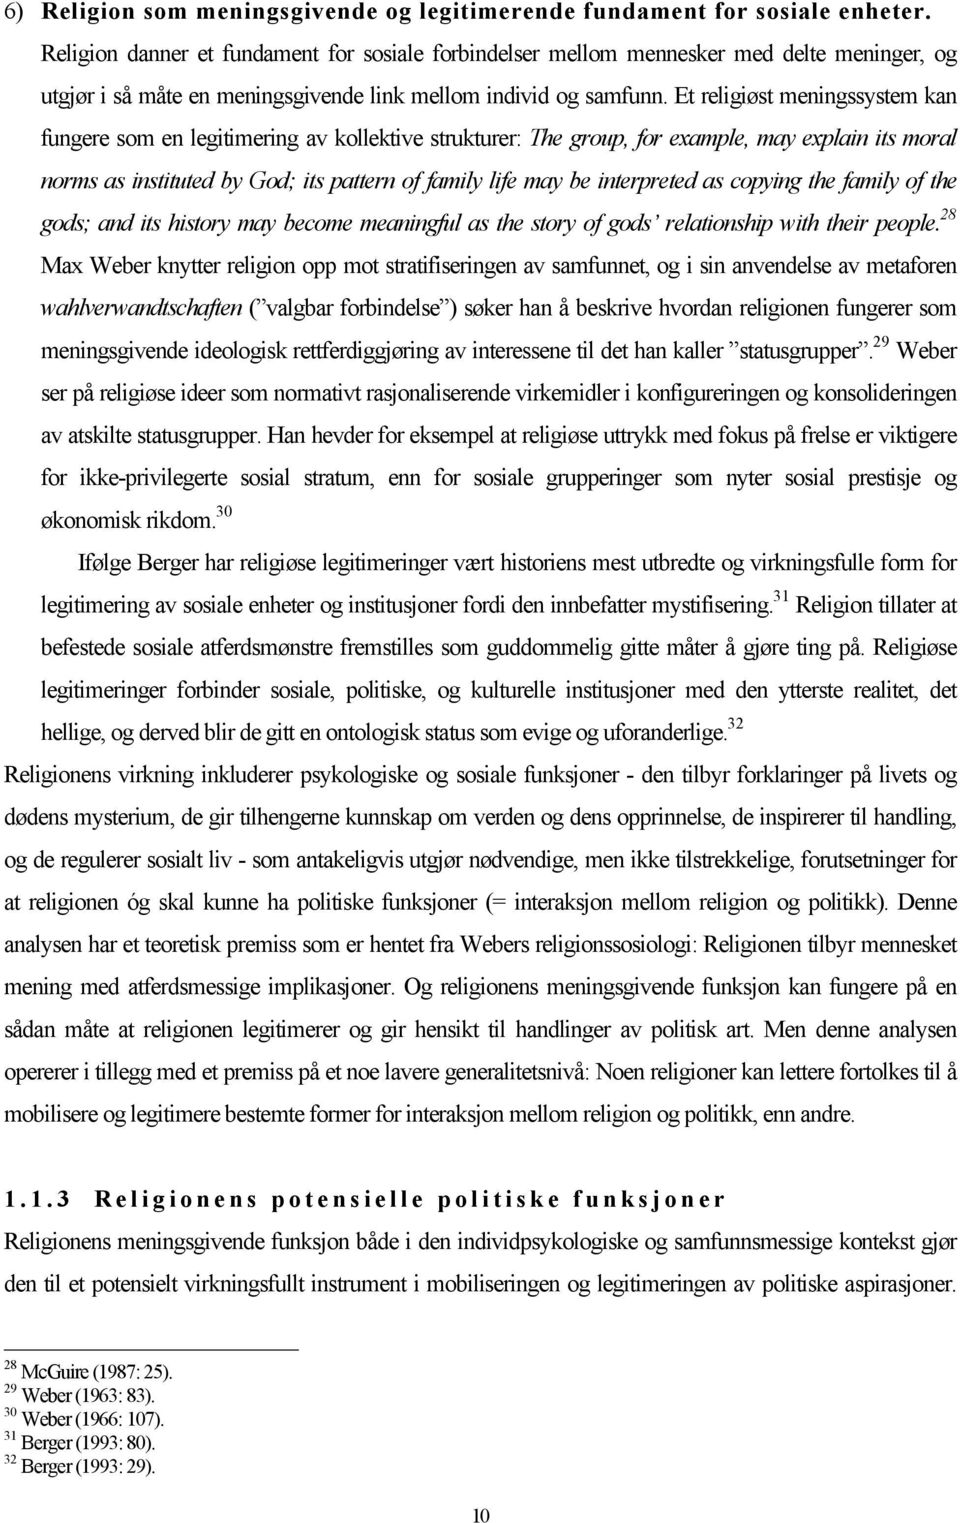 Et religiøst meningssystem kan fungere som en legitimering av kollektive strukturer: The group, for example, may explain its moral norms as instituted by God; its pattern of family life may be